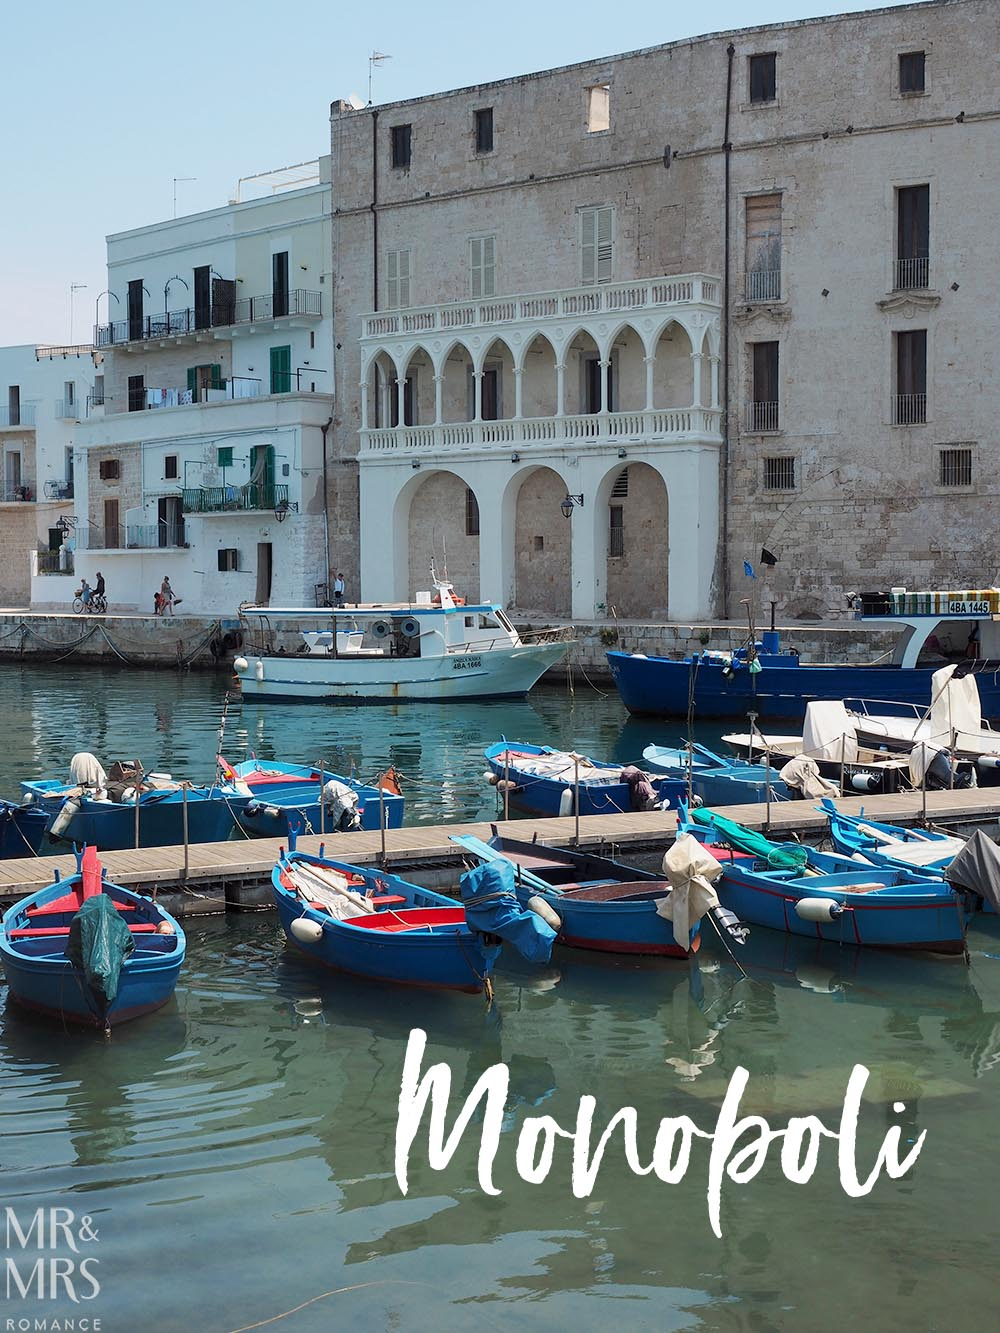 Top 10 towns of Puglia, Italy - Monopoli